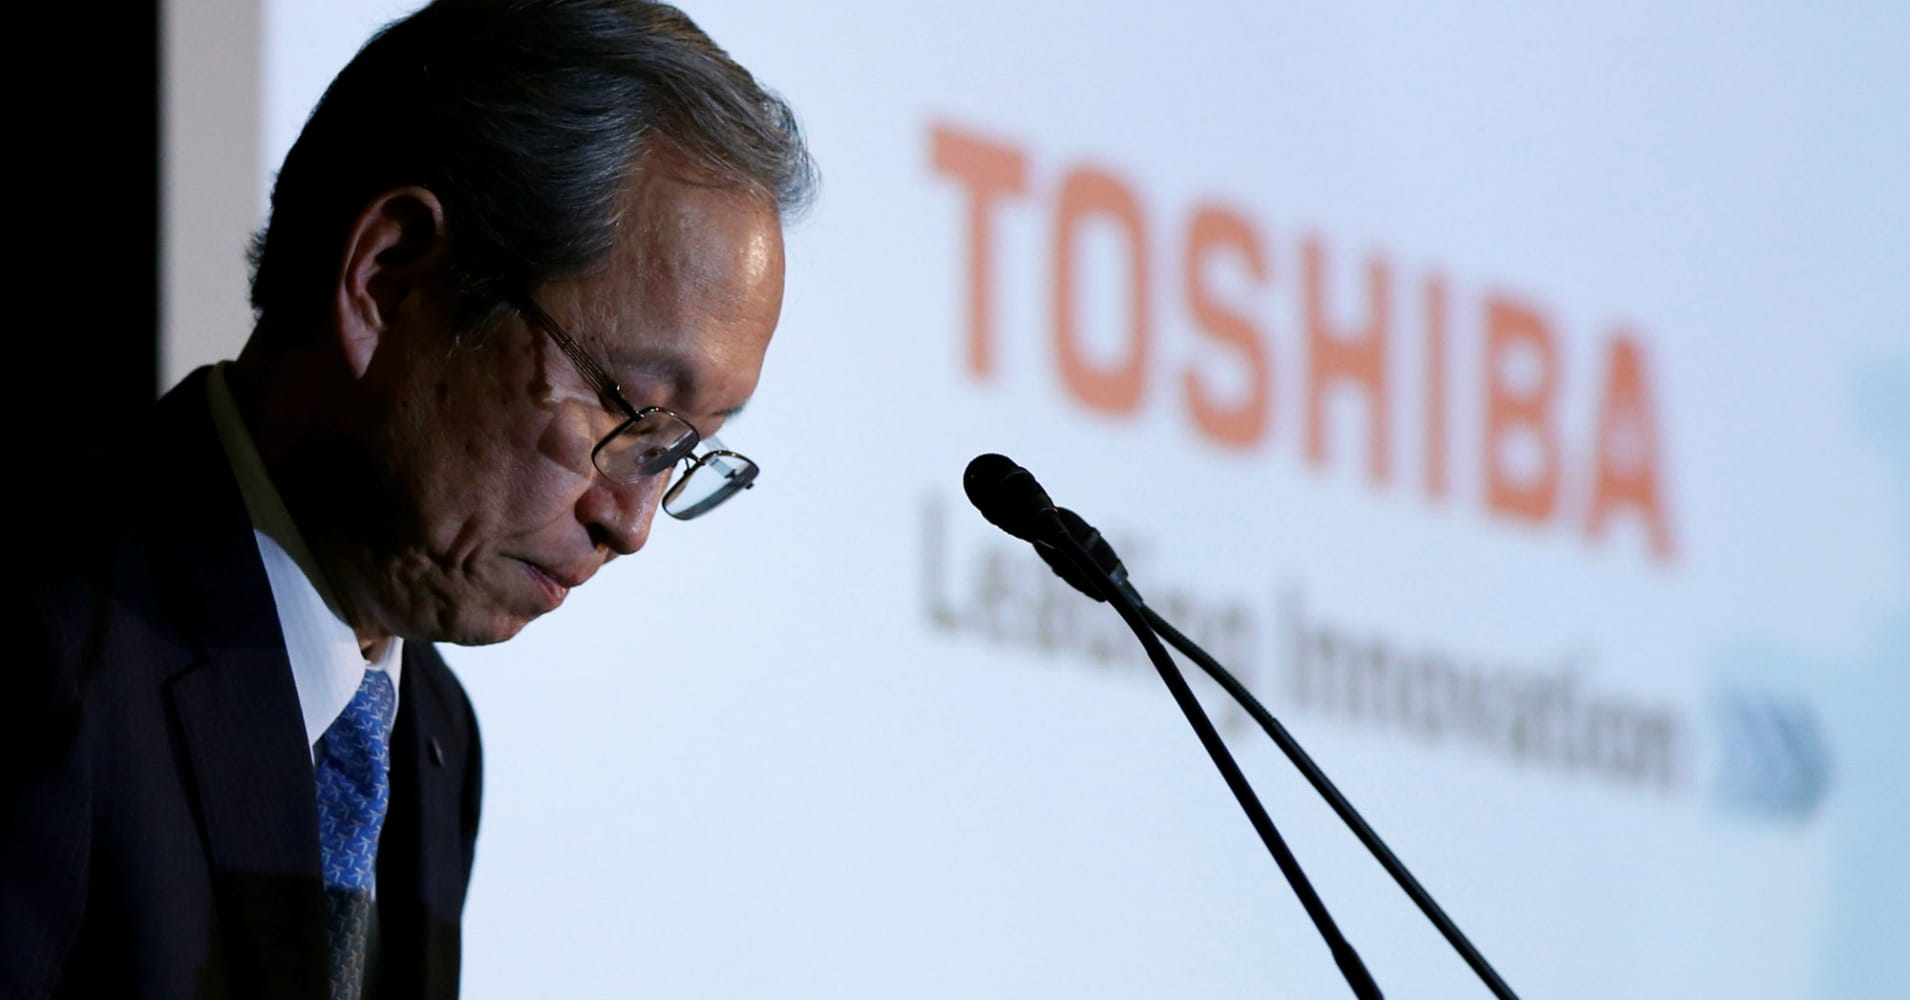 Toshiba axing PwC would be a desperate move to stay listed—commentary